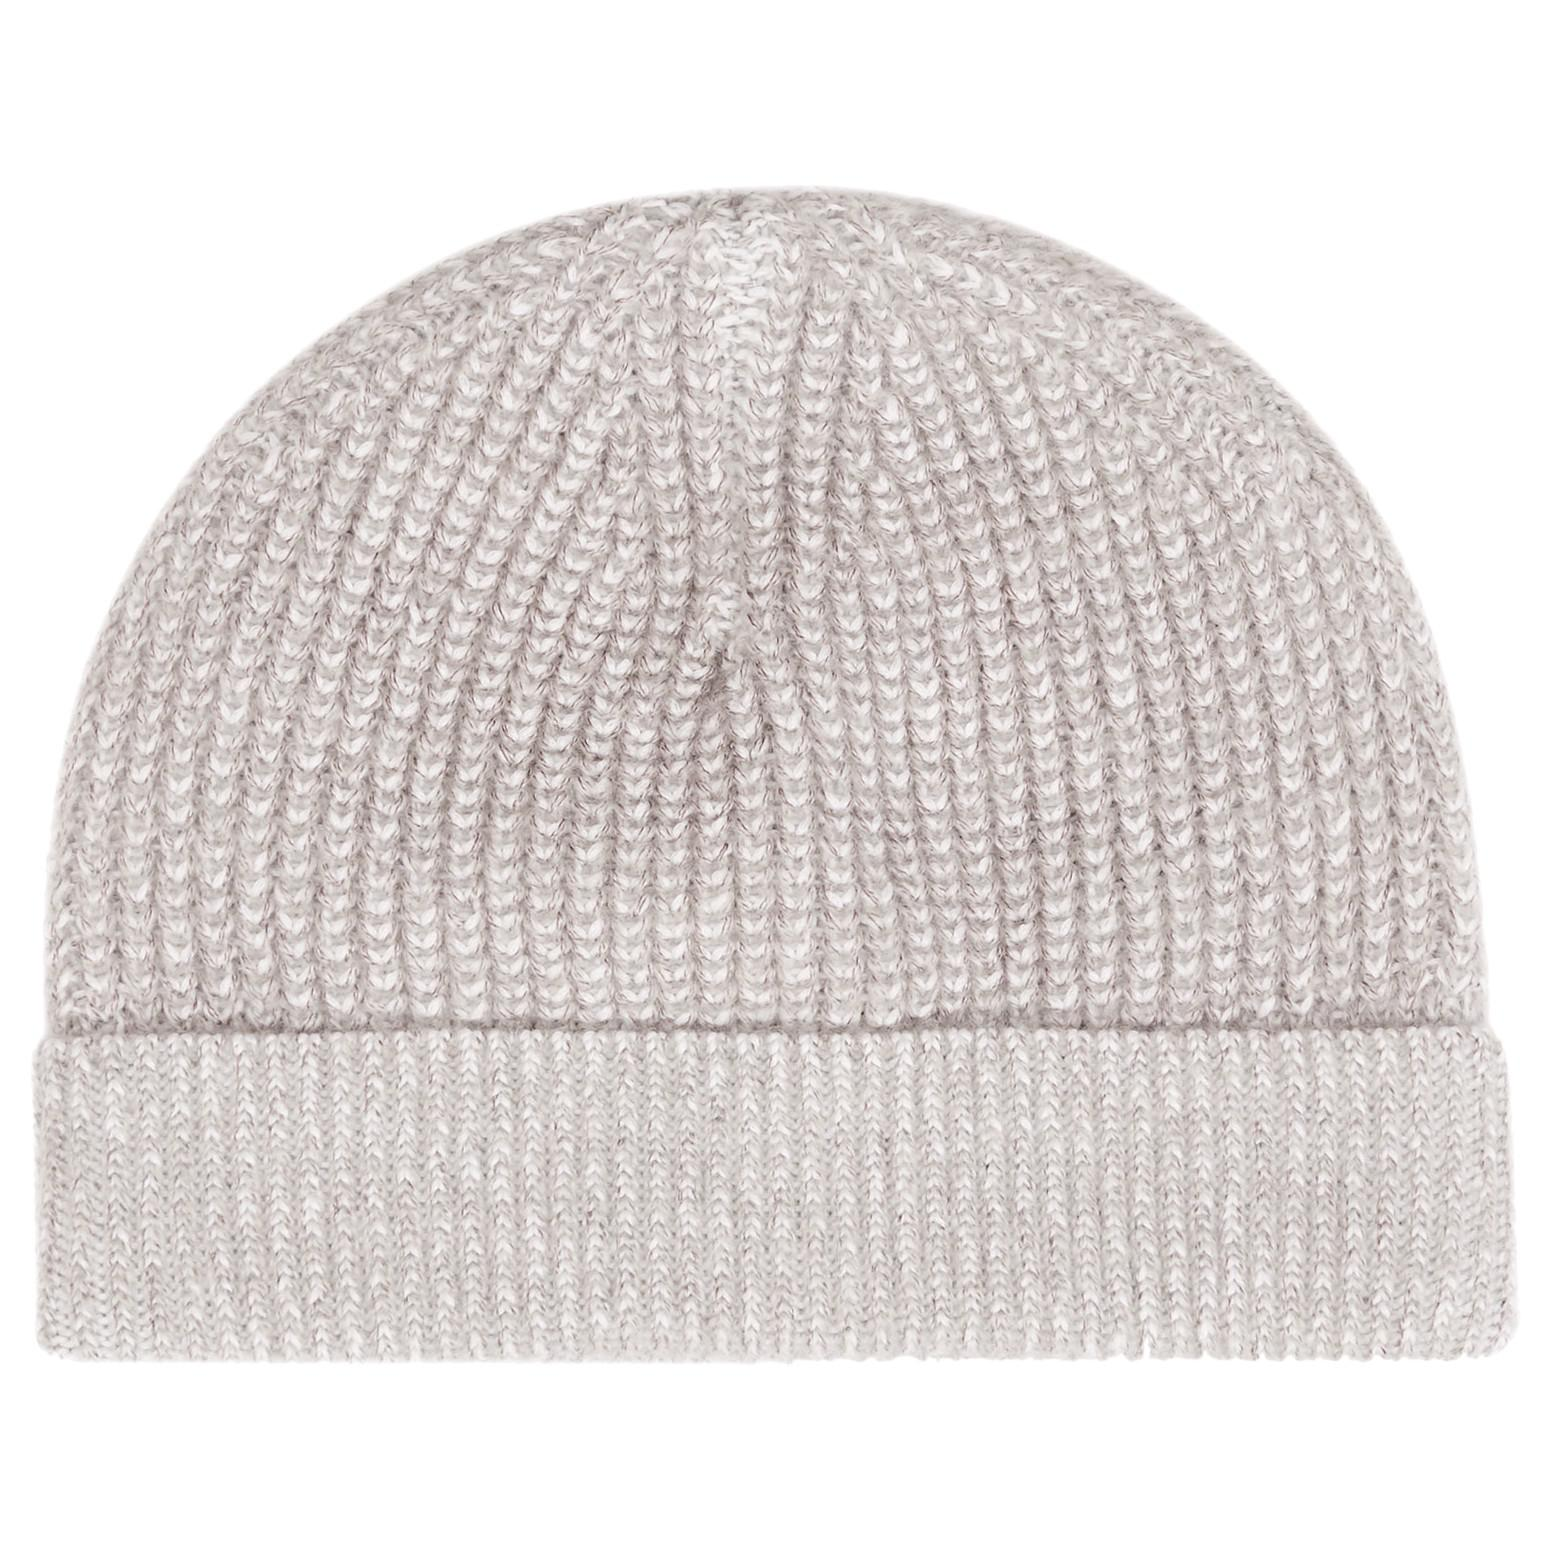 2587706fcac31 Reiss Lincoln Knit Beanie for Men - Lyst